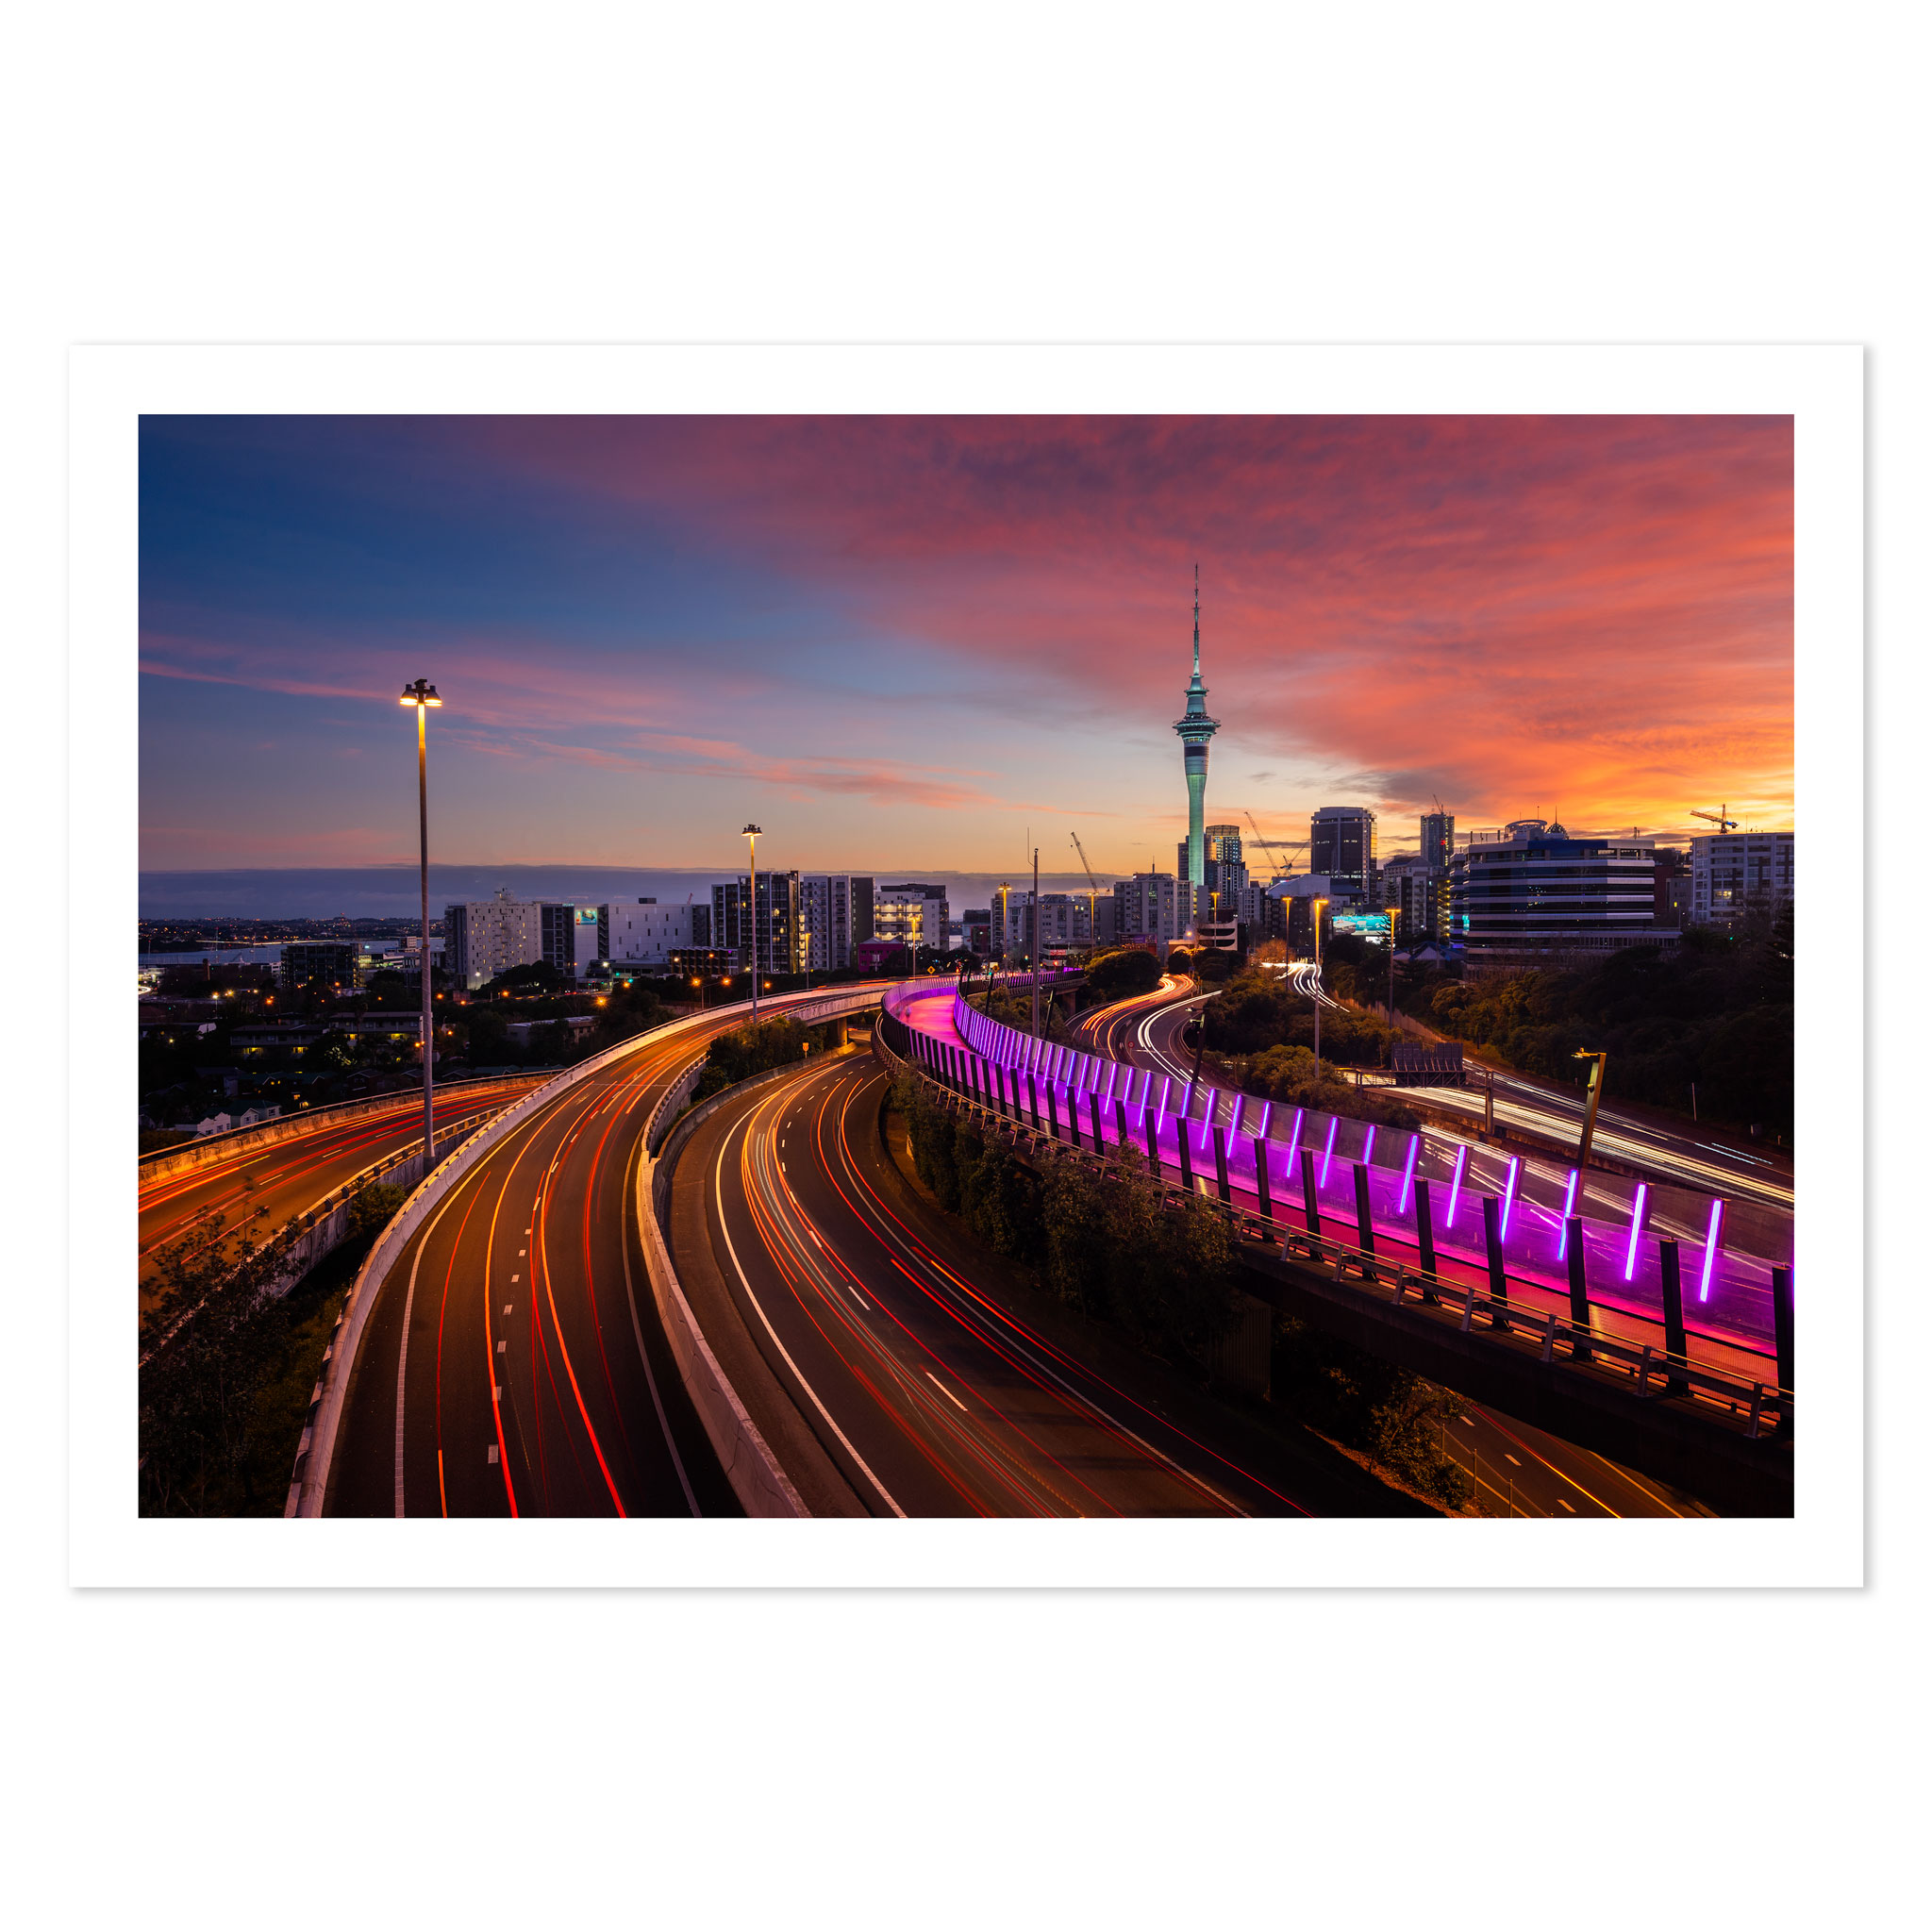 View of Auckland city skyline, Sky Tower, and motorway with car trails at sunrise.